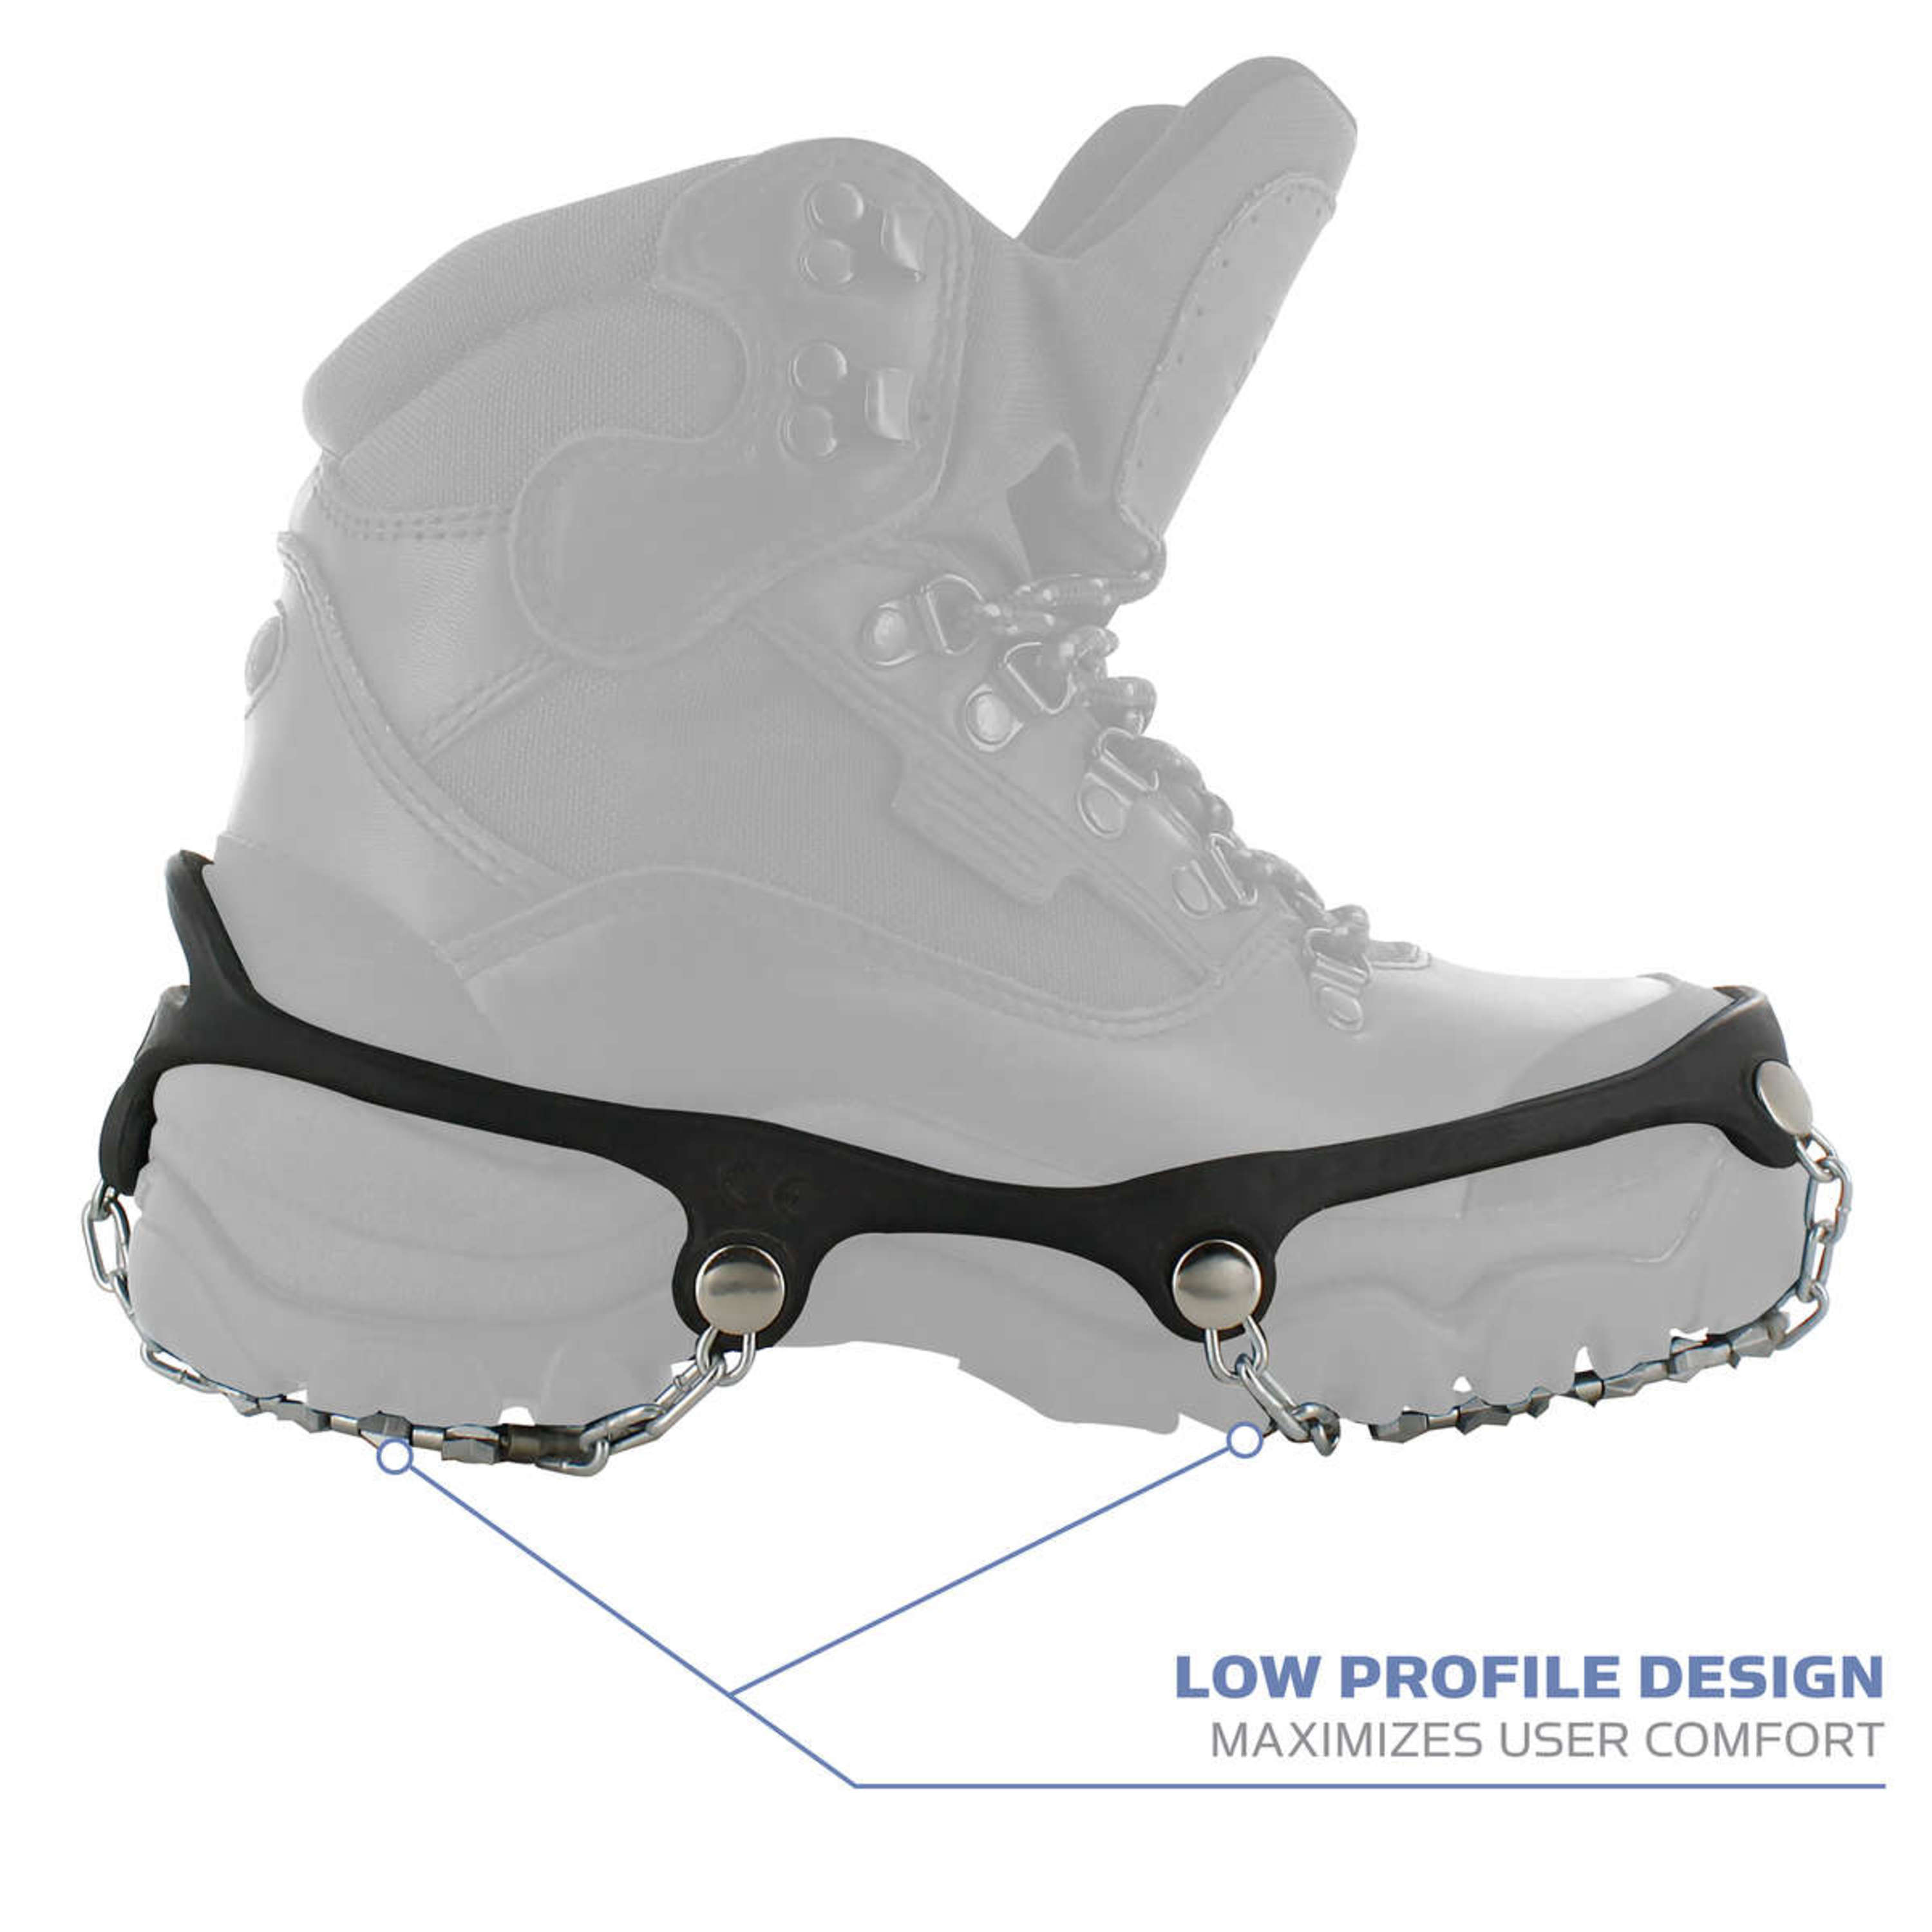 1 Pair Yaktrax Diamond Grip All-Surface Traction Cleats for Walking on Ice and Snow